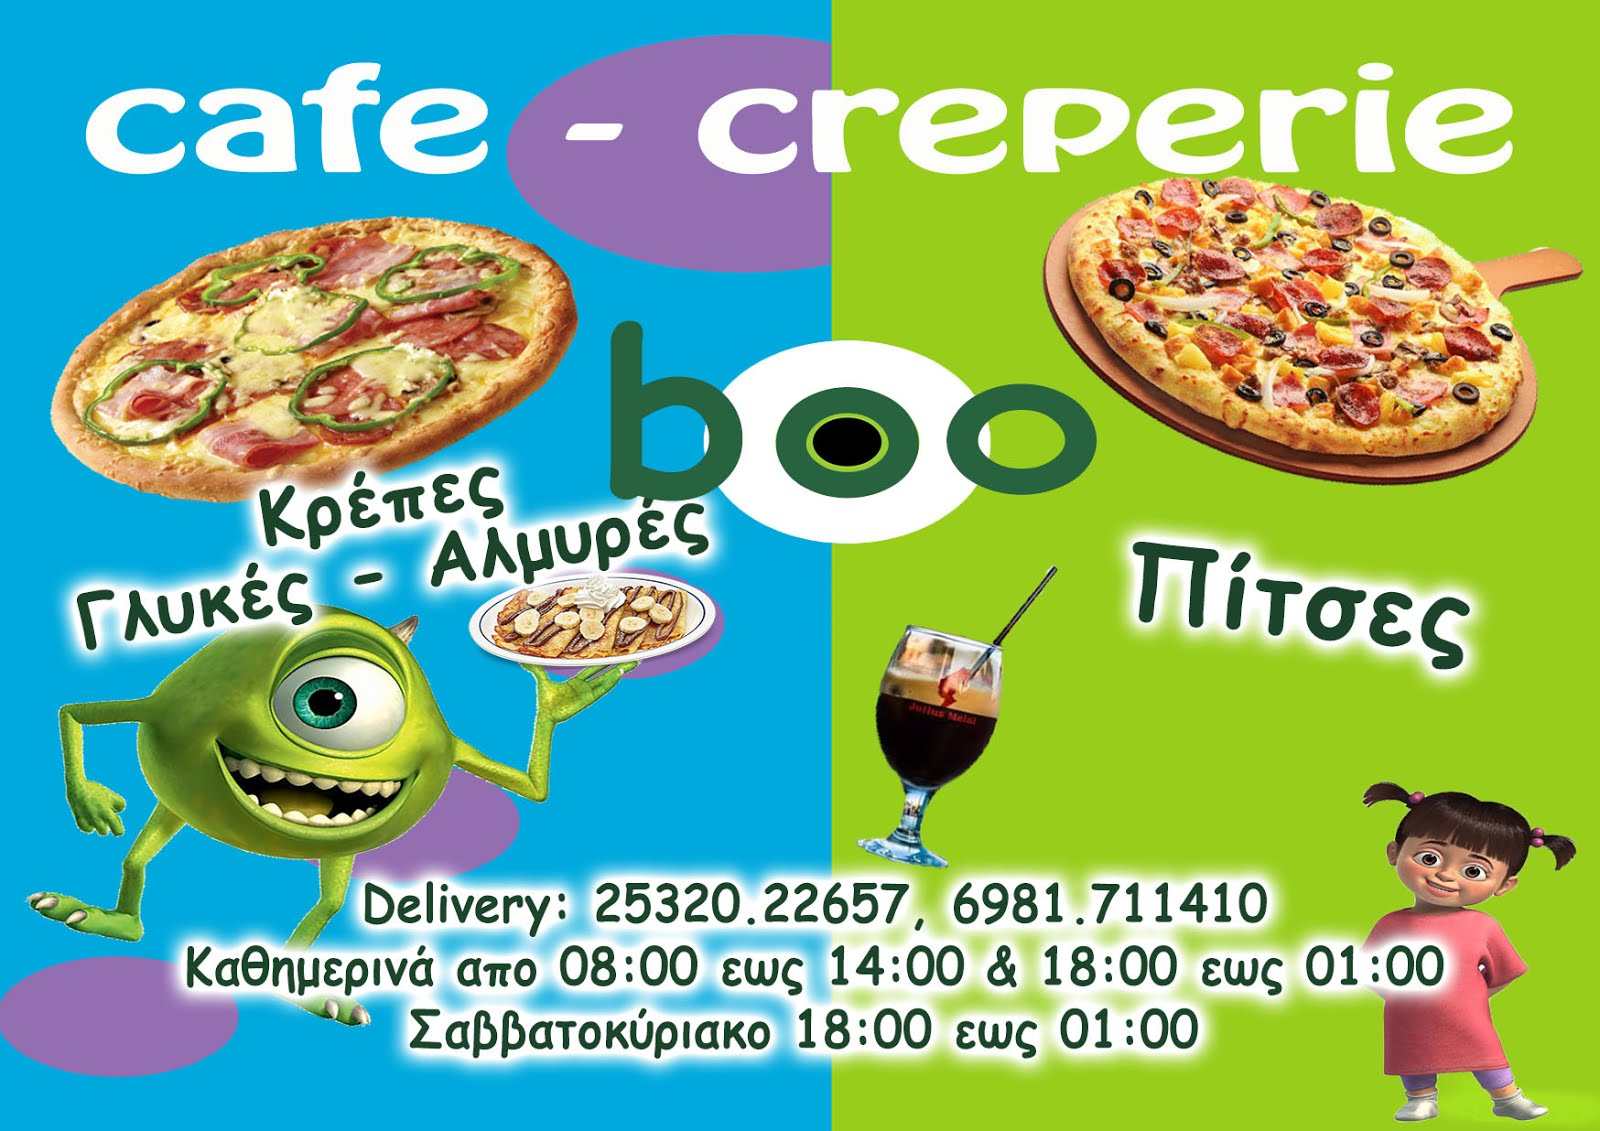 Cafe-Creperie